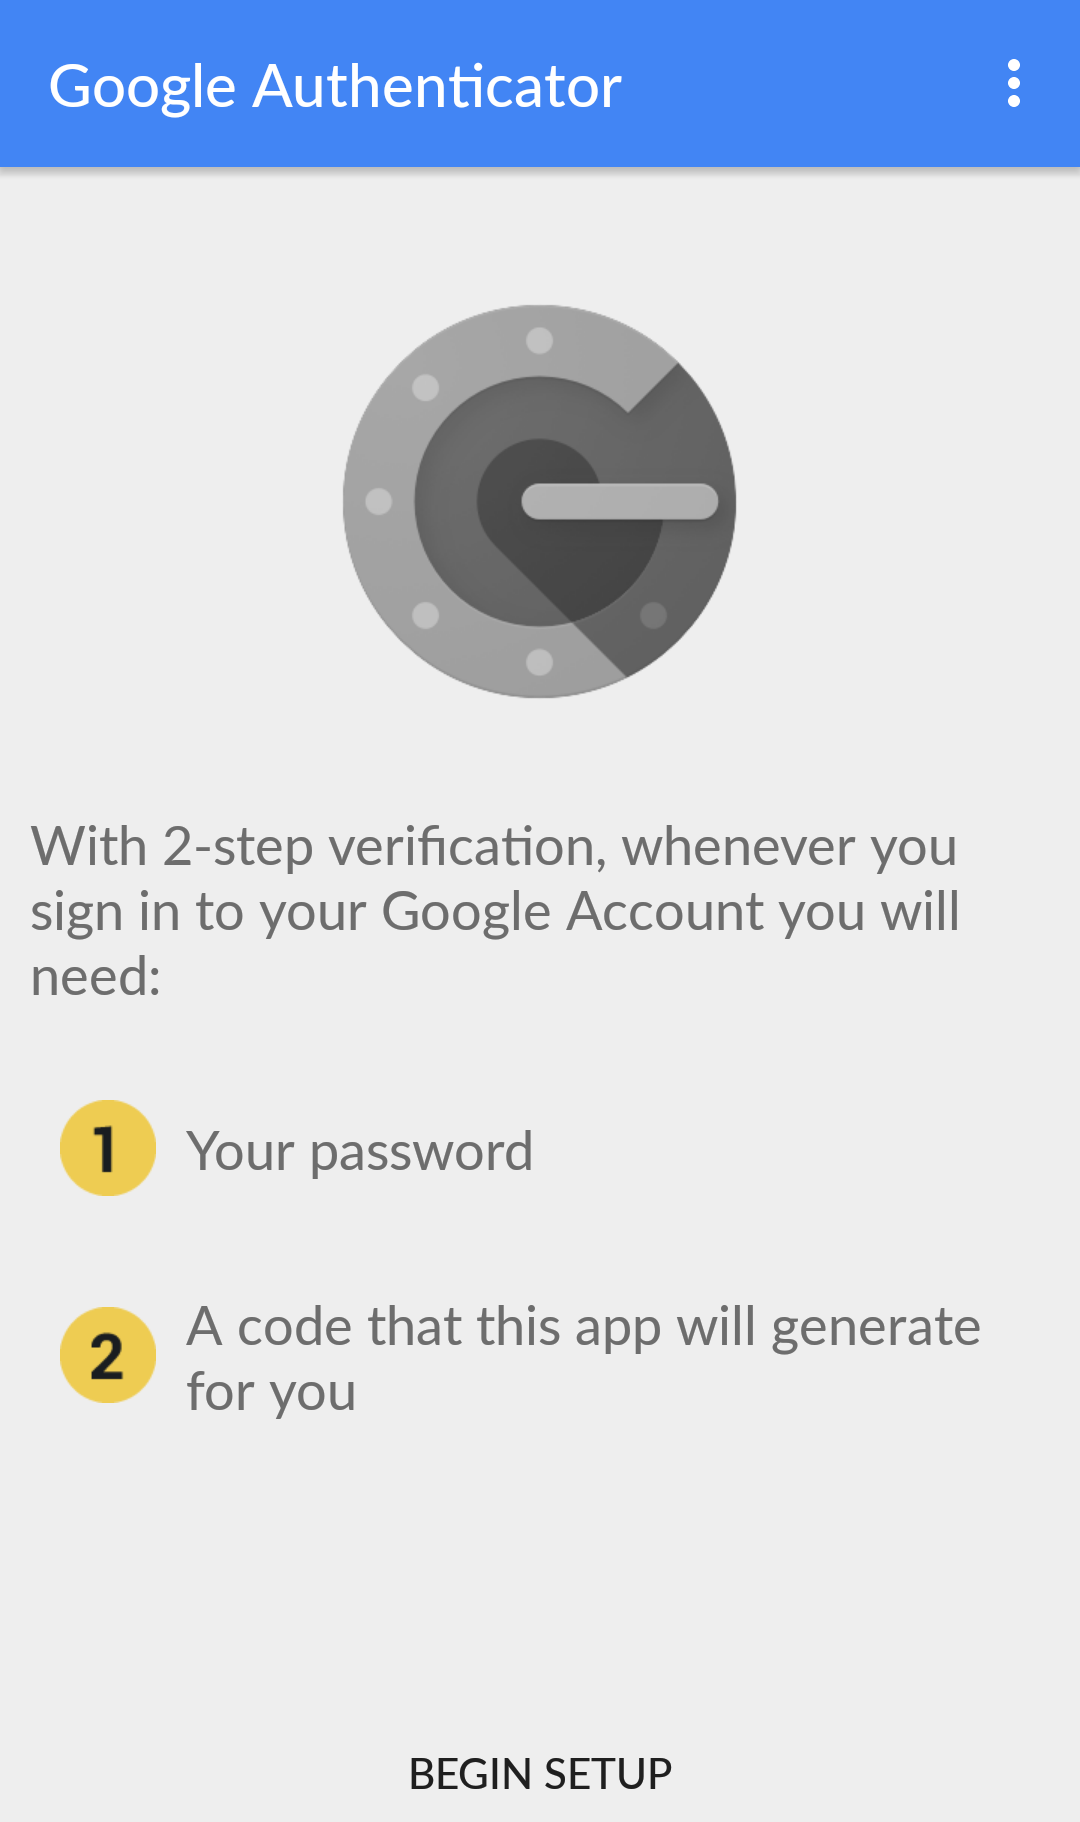 google authenticator manual account entry